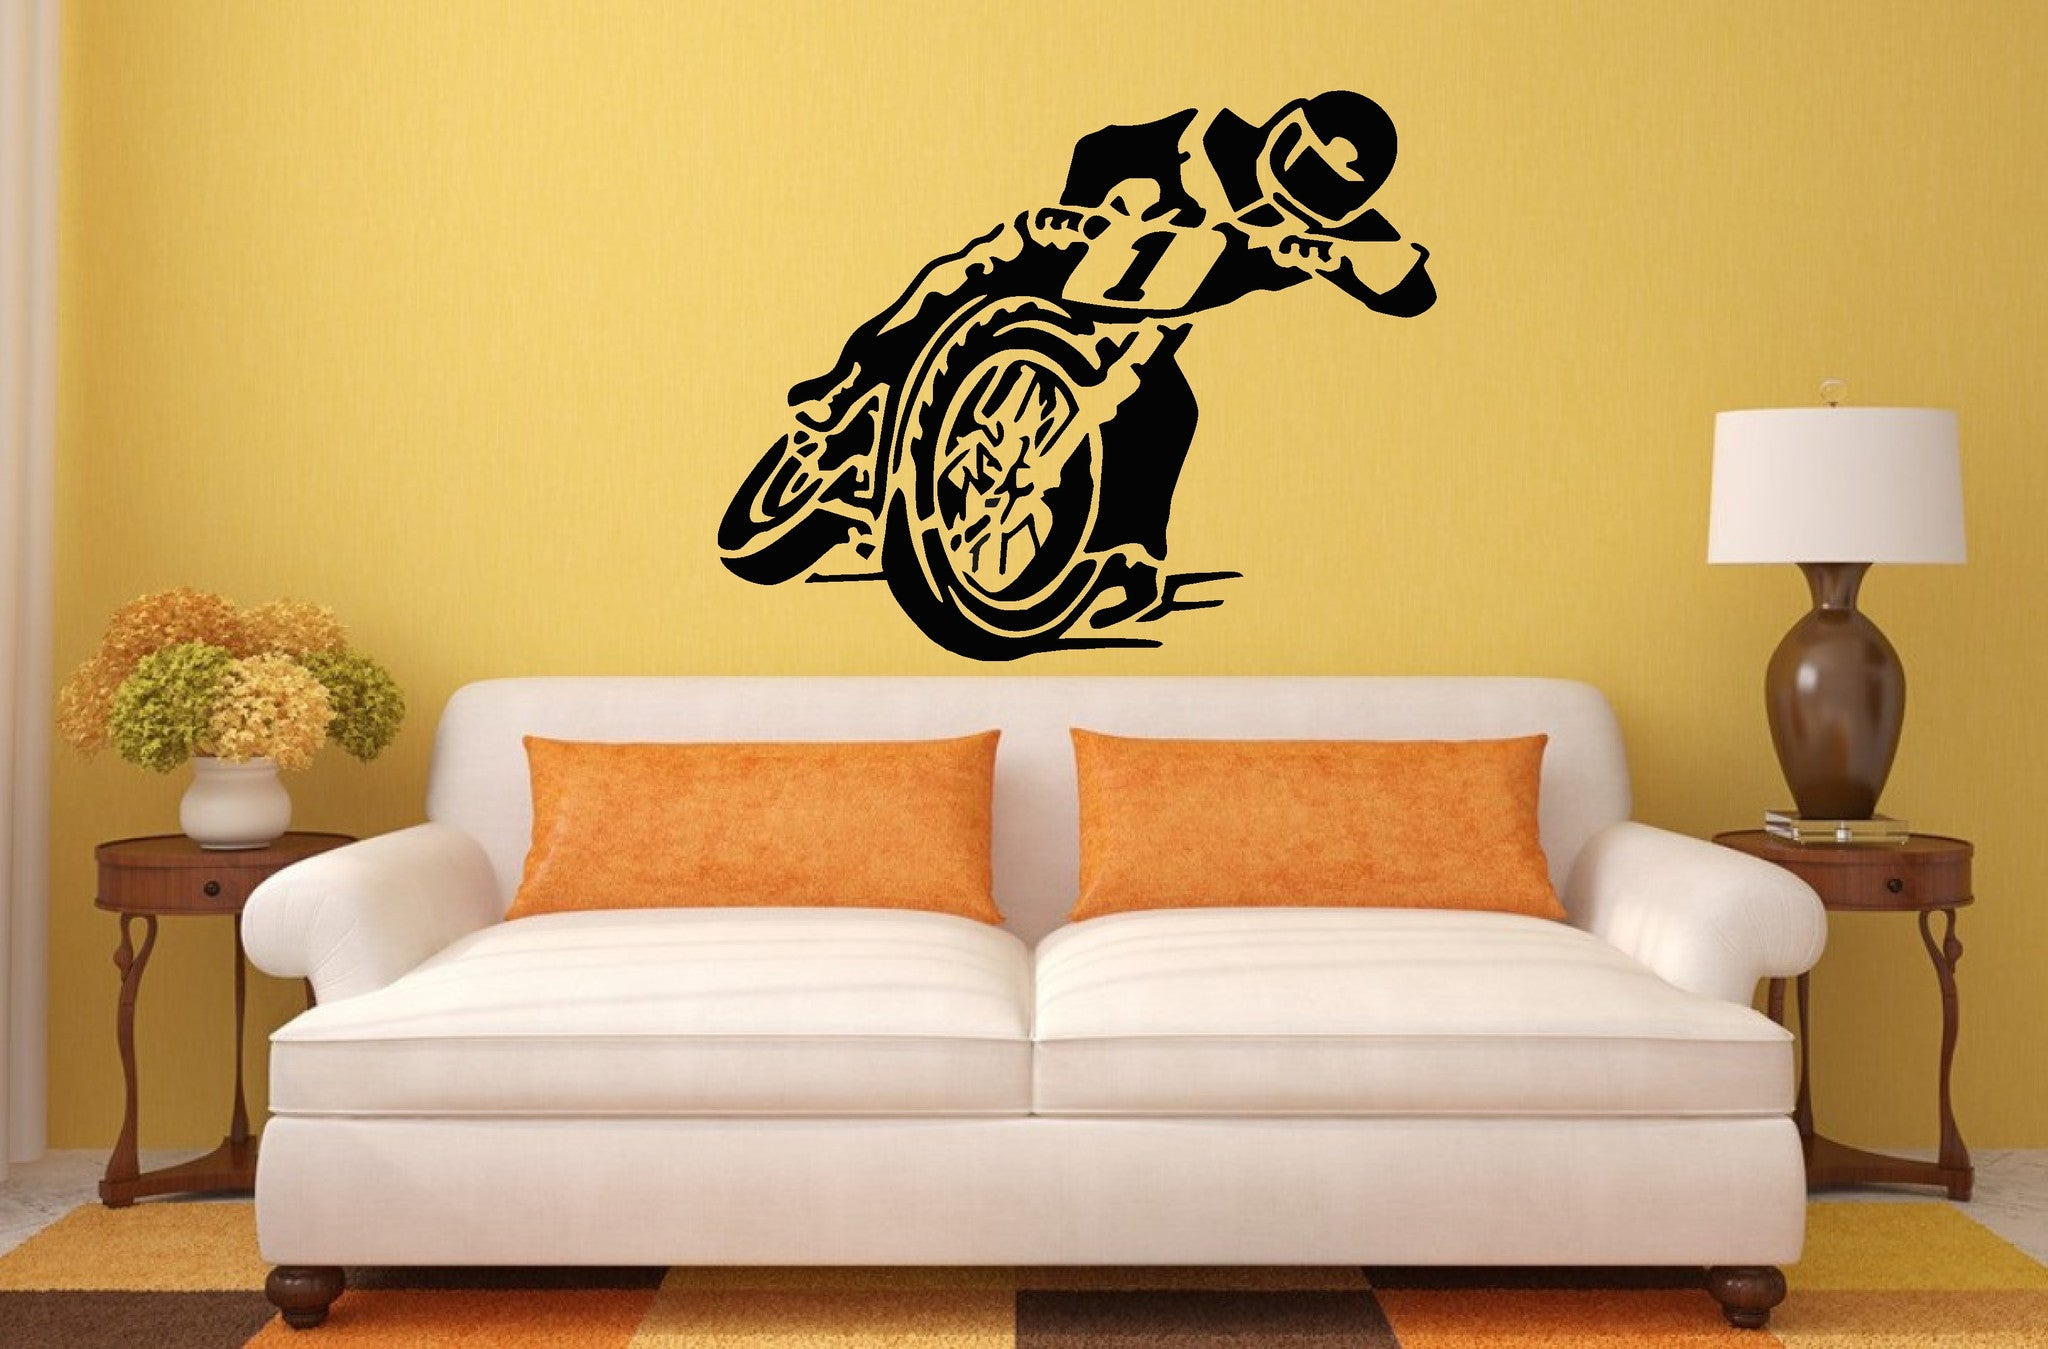 Speedway Bike Wall Art Sticker, Decal, Mural – Wall Art Shop